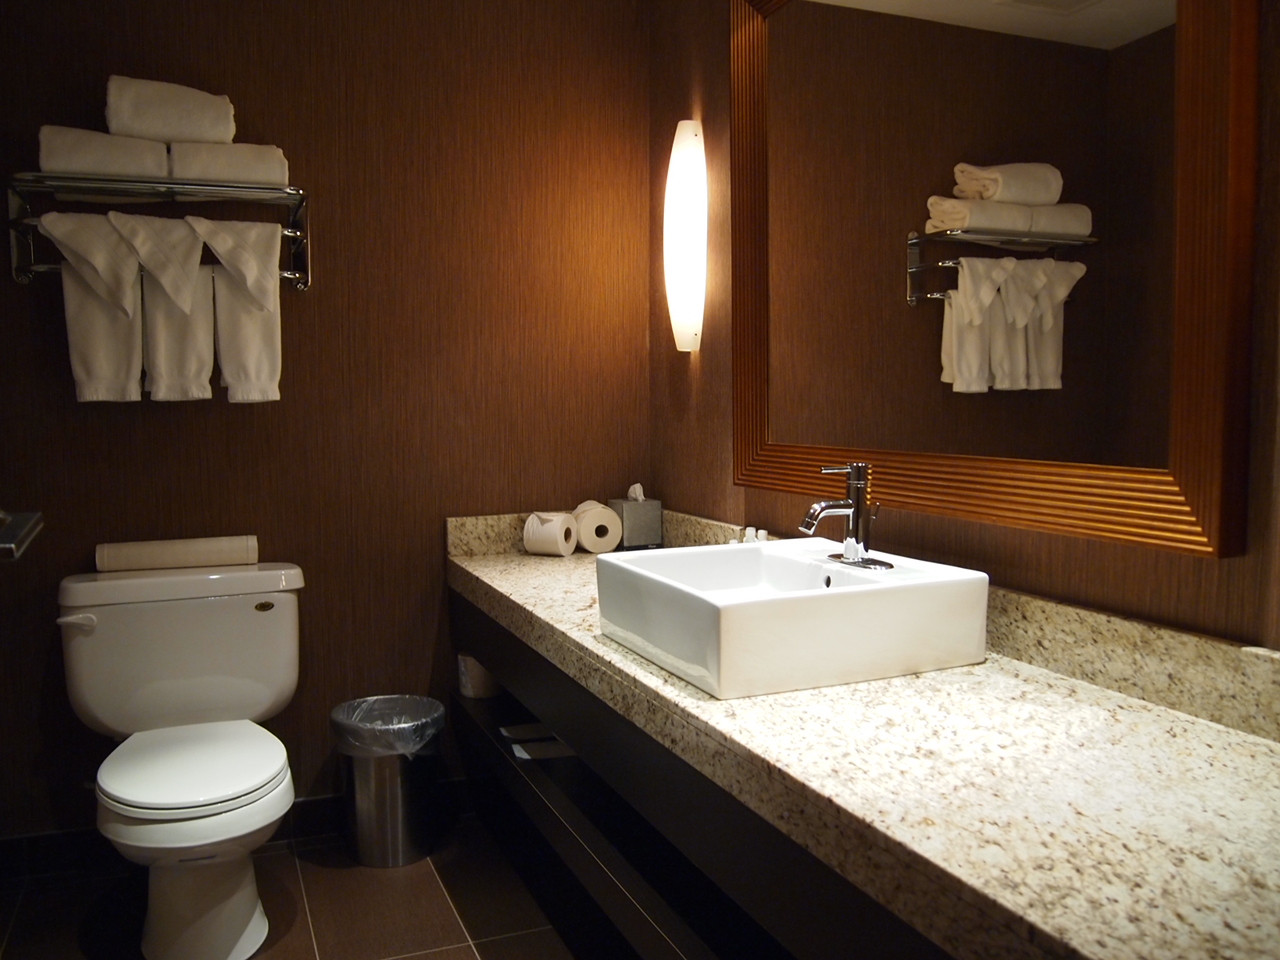 Edmonton hotel and convention centre elsie hui for Bathroom ideas edmonton